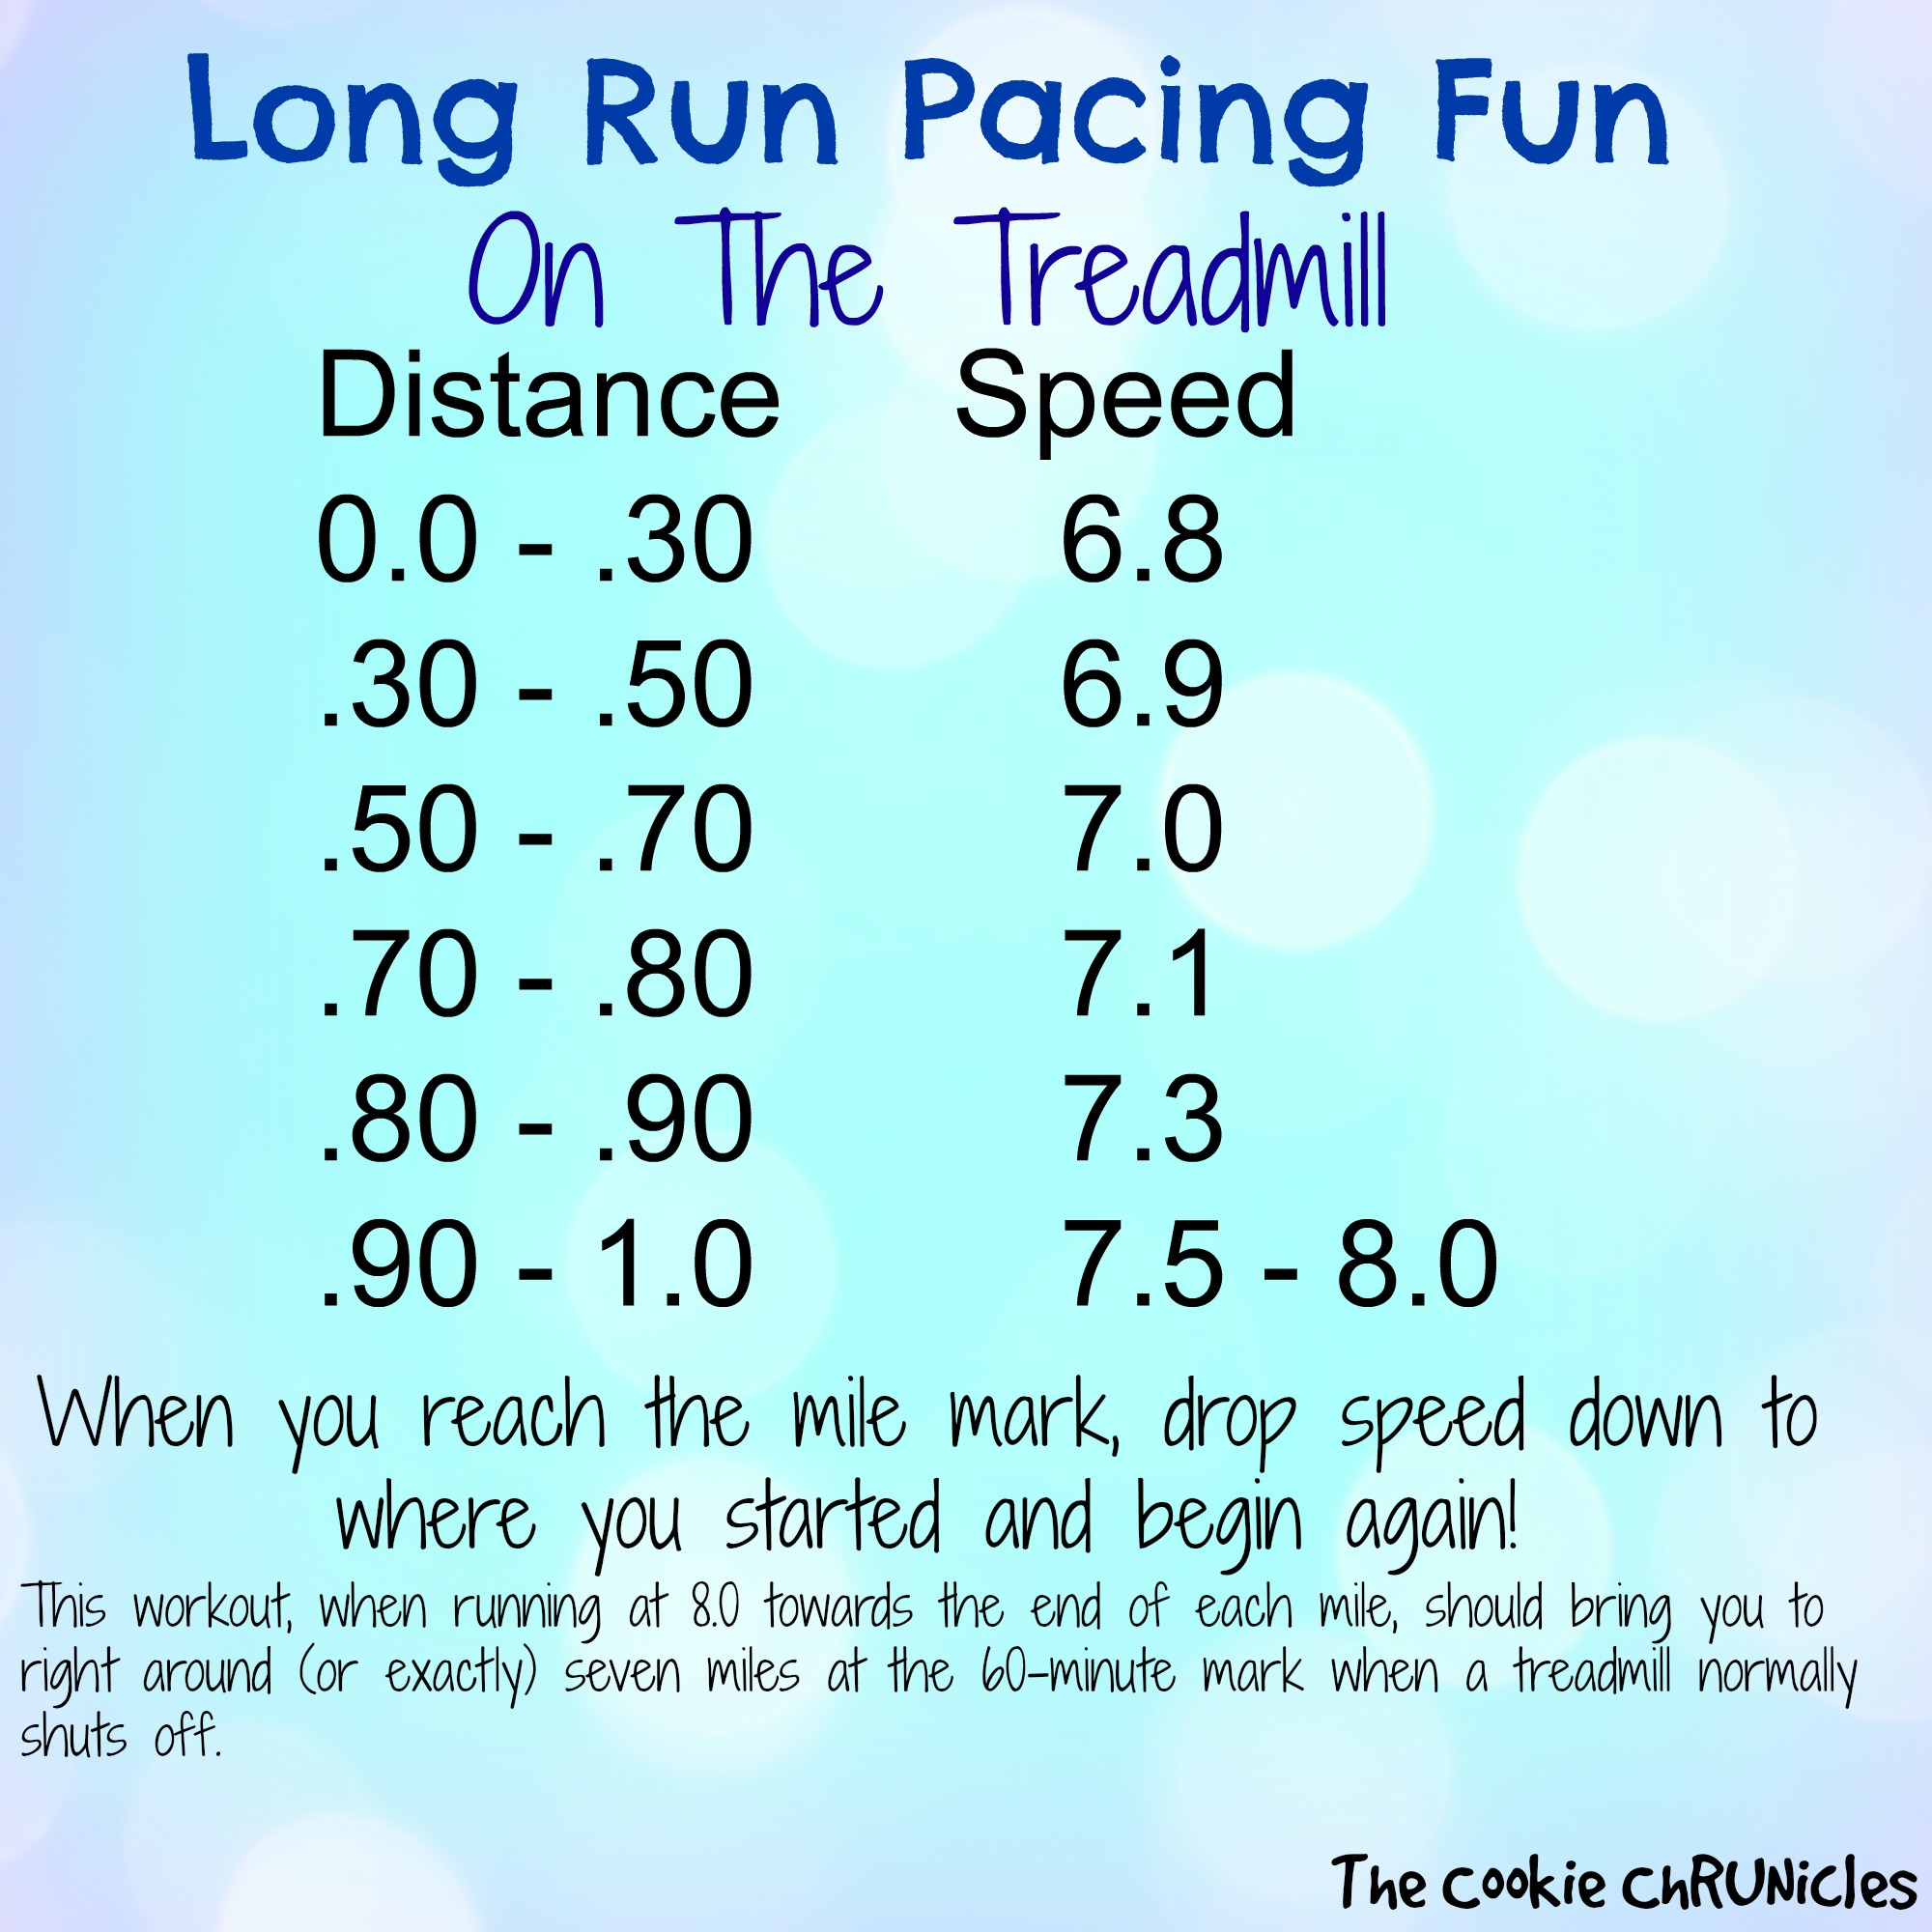 Long Run Pacing On The Treadmill